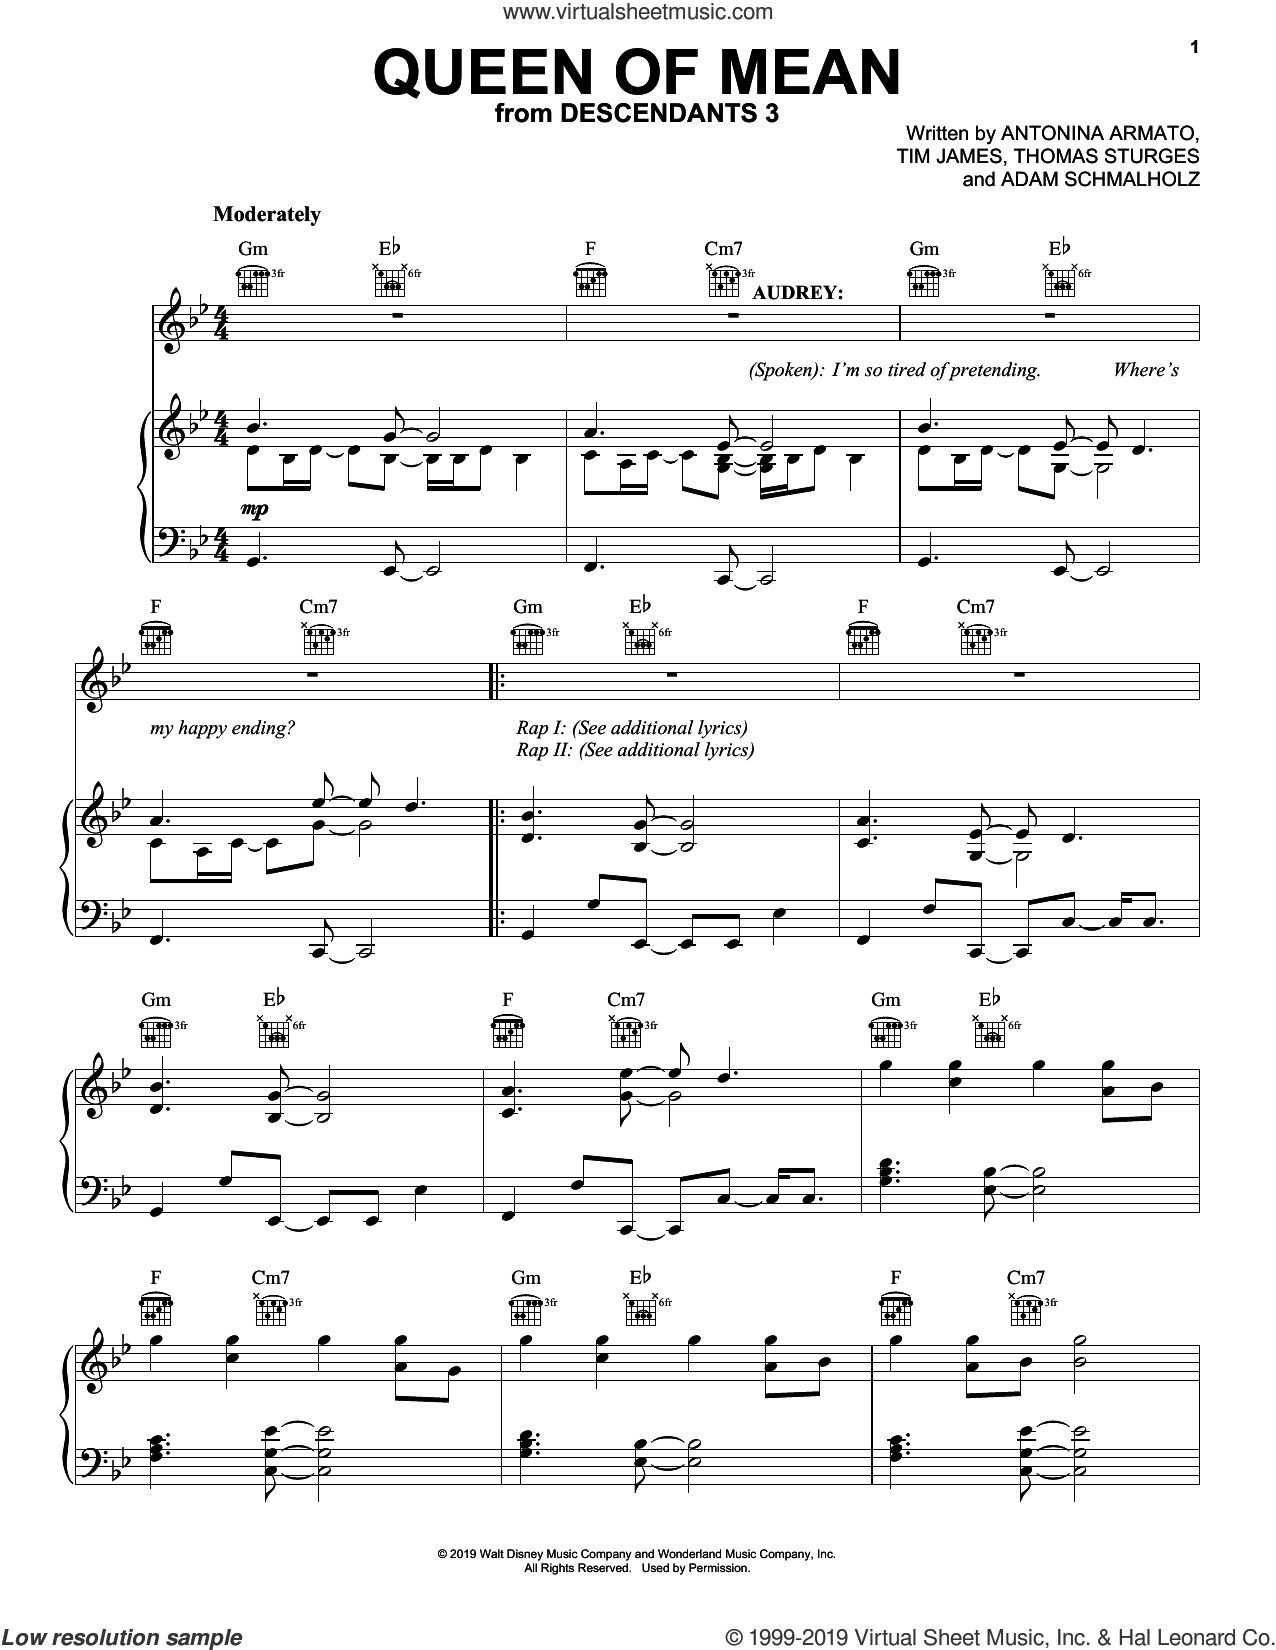 Queen Of Mean (from Disney's Descendants 3) sheet music for voice, piano or guitar by Sarah Jeffery, Adam Schmalholz, Antonina Armato, Thomas Sturges and Tim James, intermediate skill level